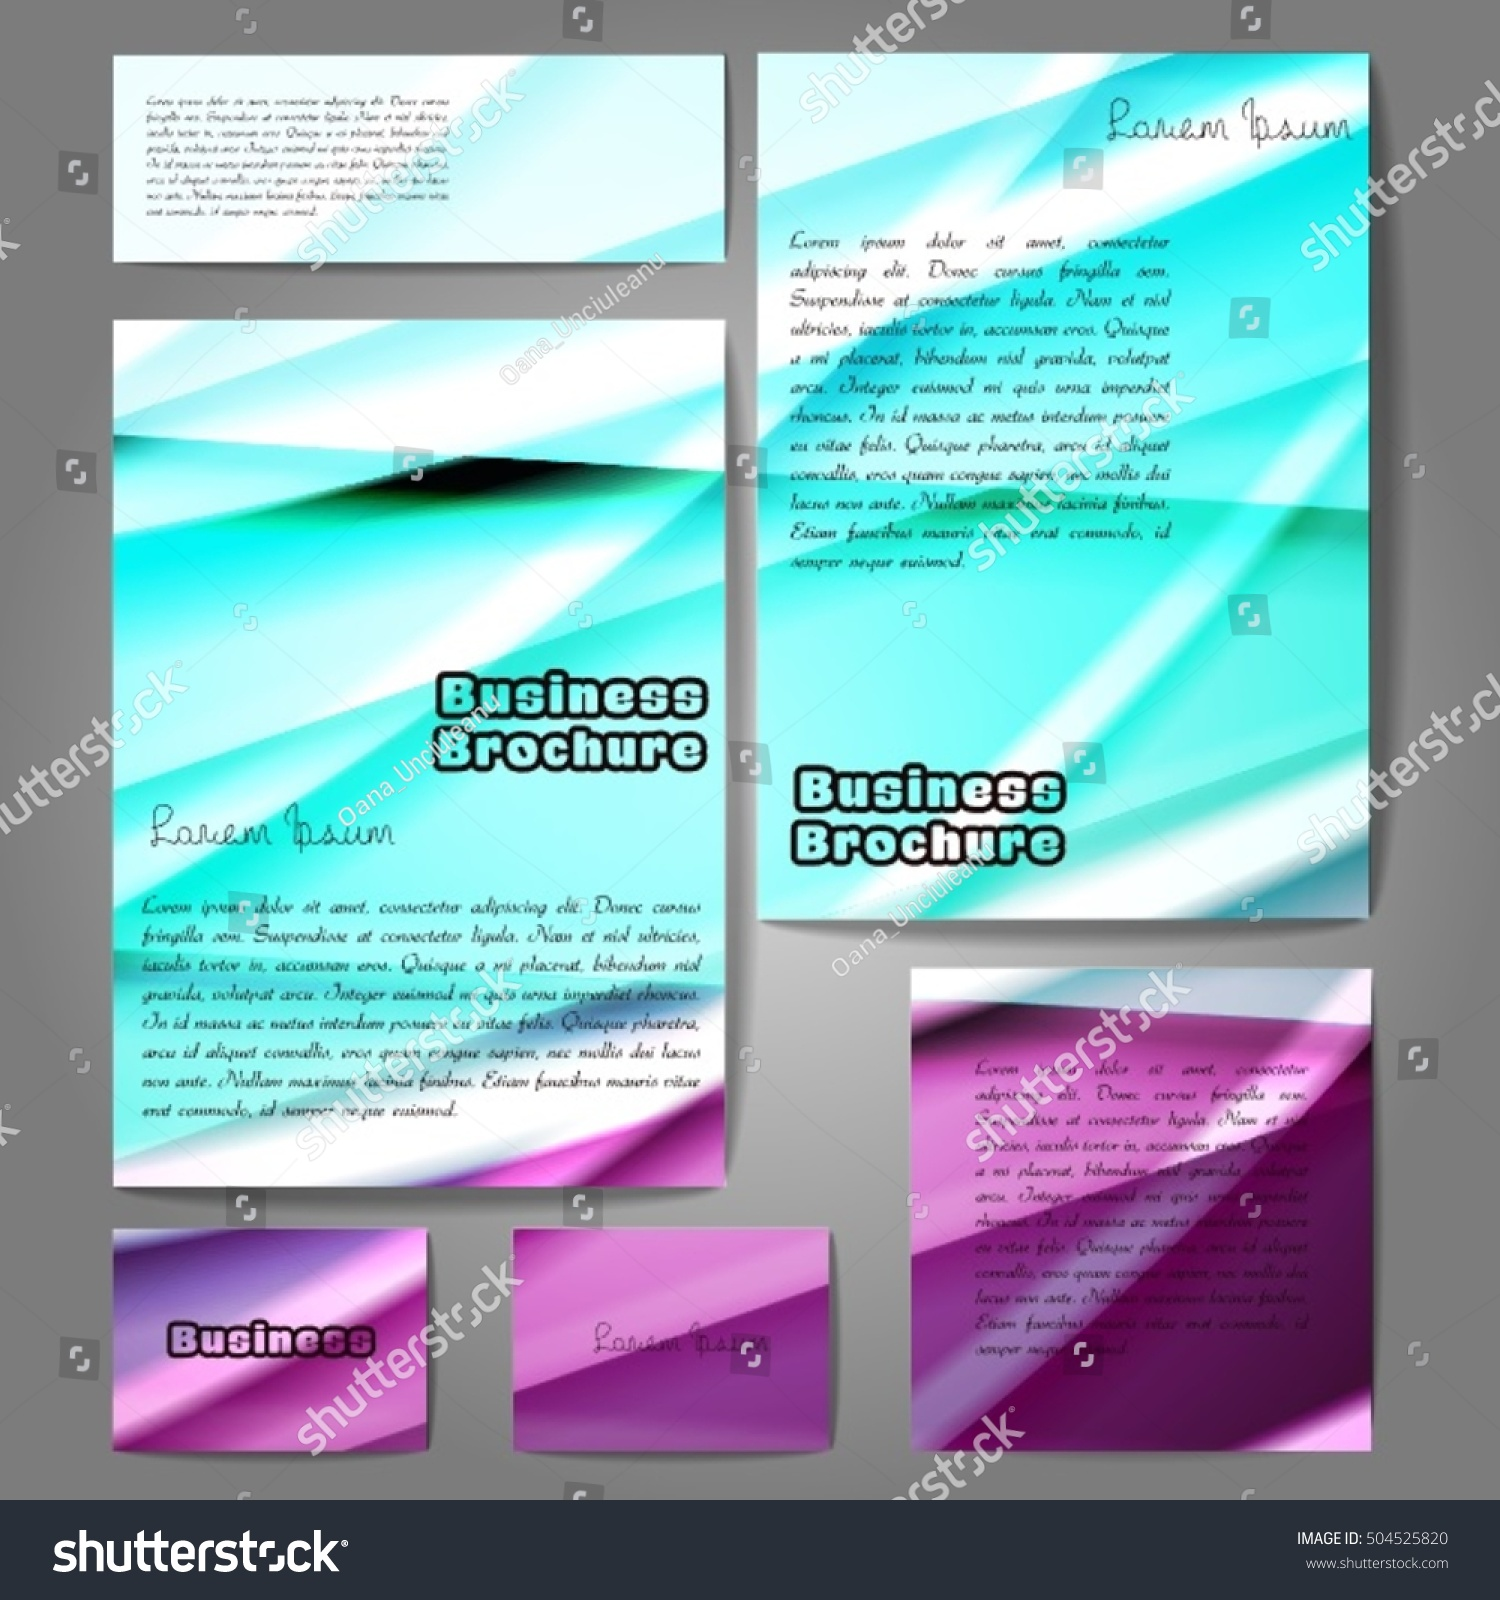 Corporate identity template set Business stationery mock up with